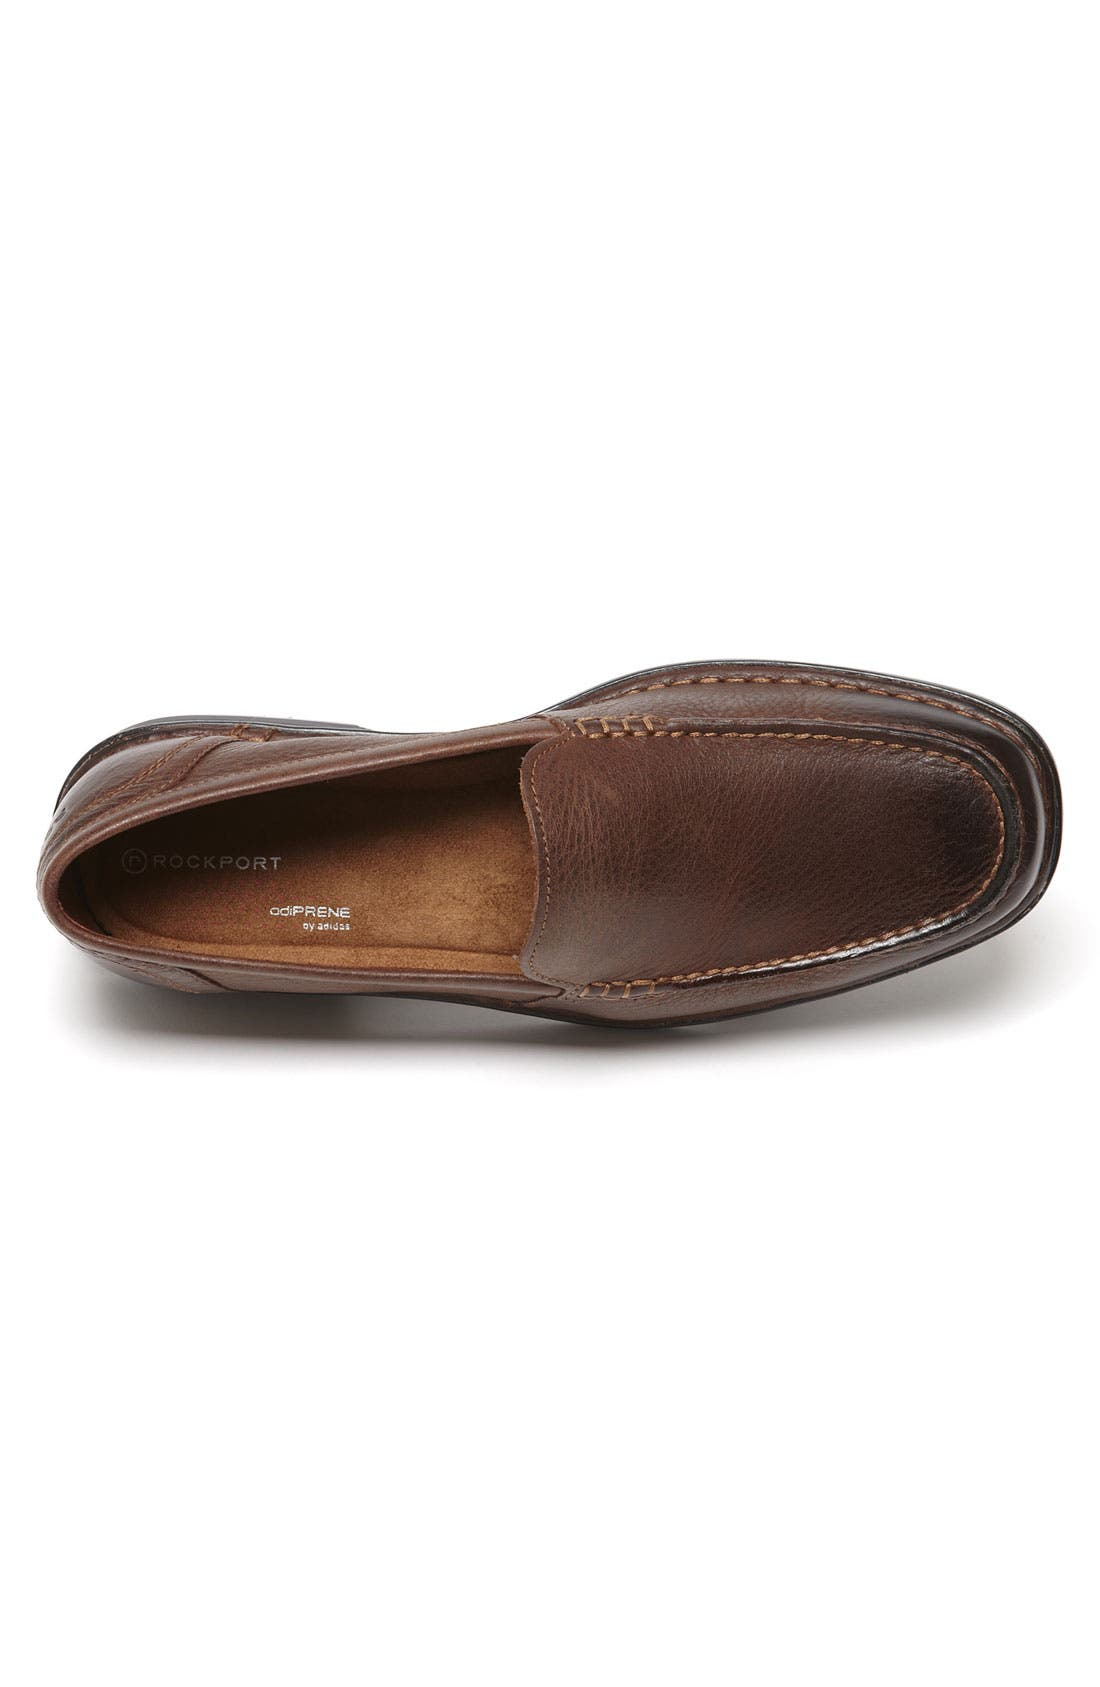 Alternate Image 3  - Rockport 'Washington Square' Venetian Loafer (Online Only)